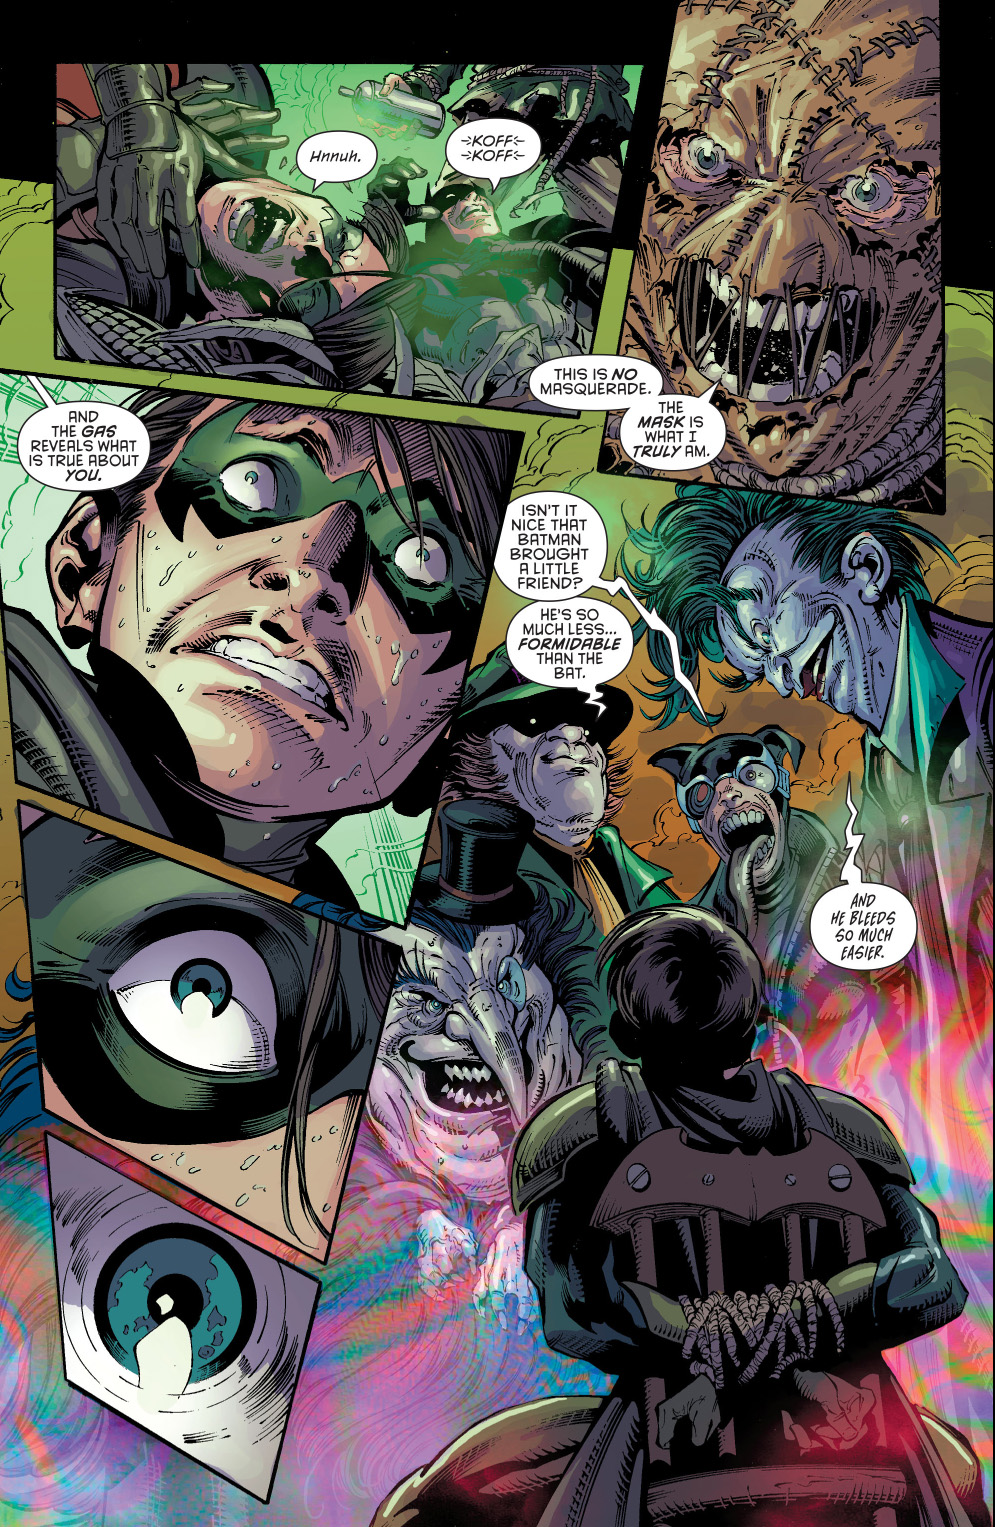 robin�s hallucinations from the fear toxin new 52